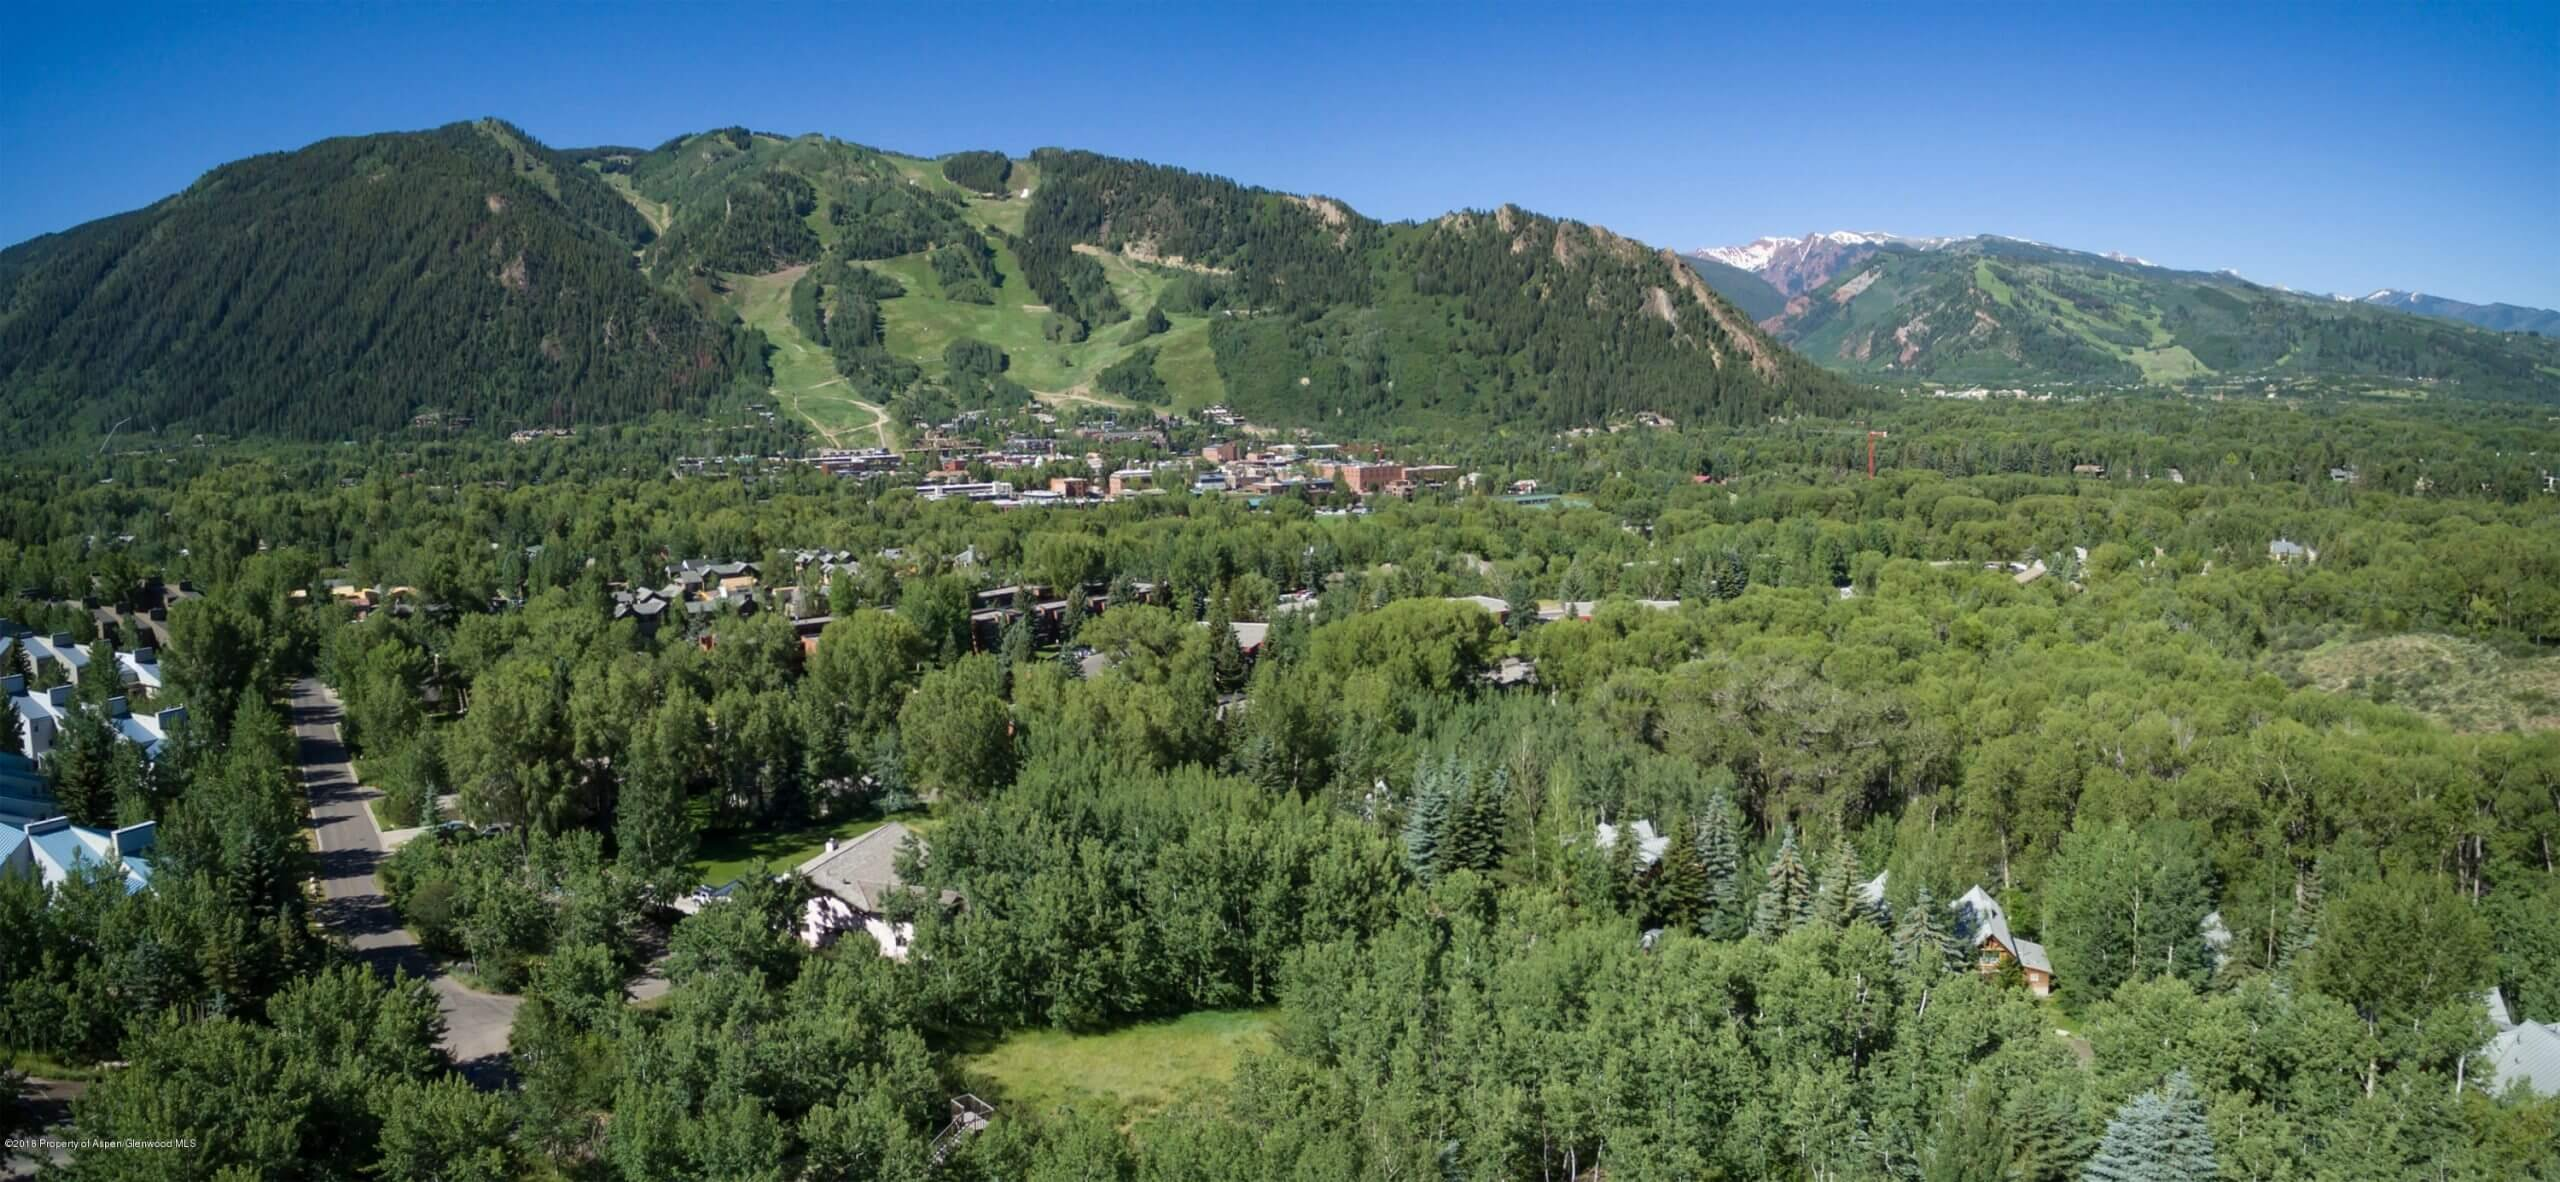 Walk to Aspen Town: Smuggler Area 1- Acre Vacant Lot at 40 Spruce Court Sells at $5.5M Image